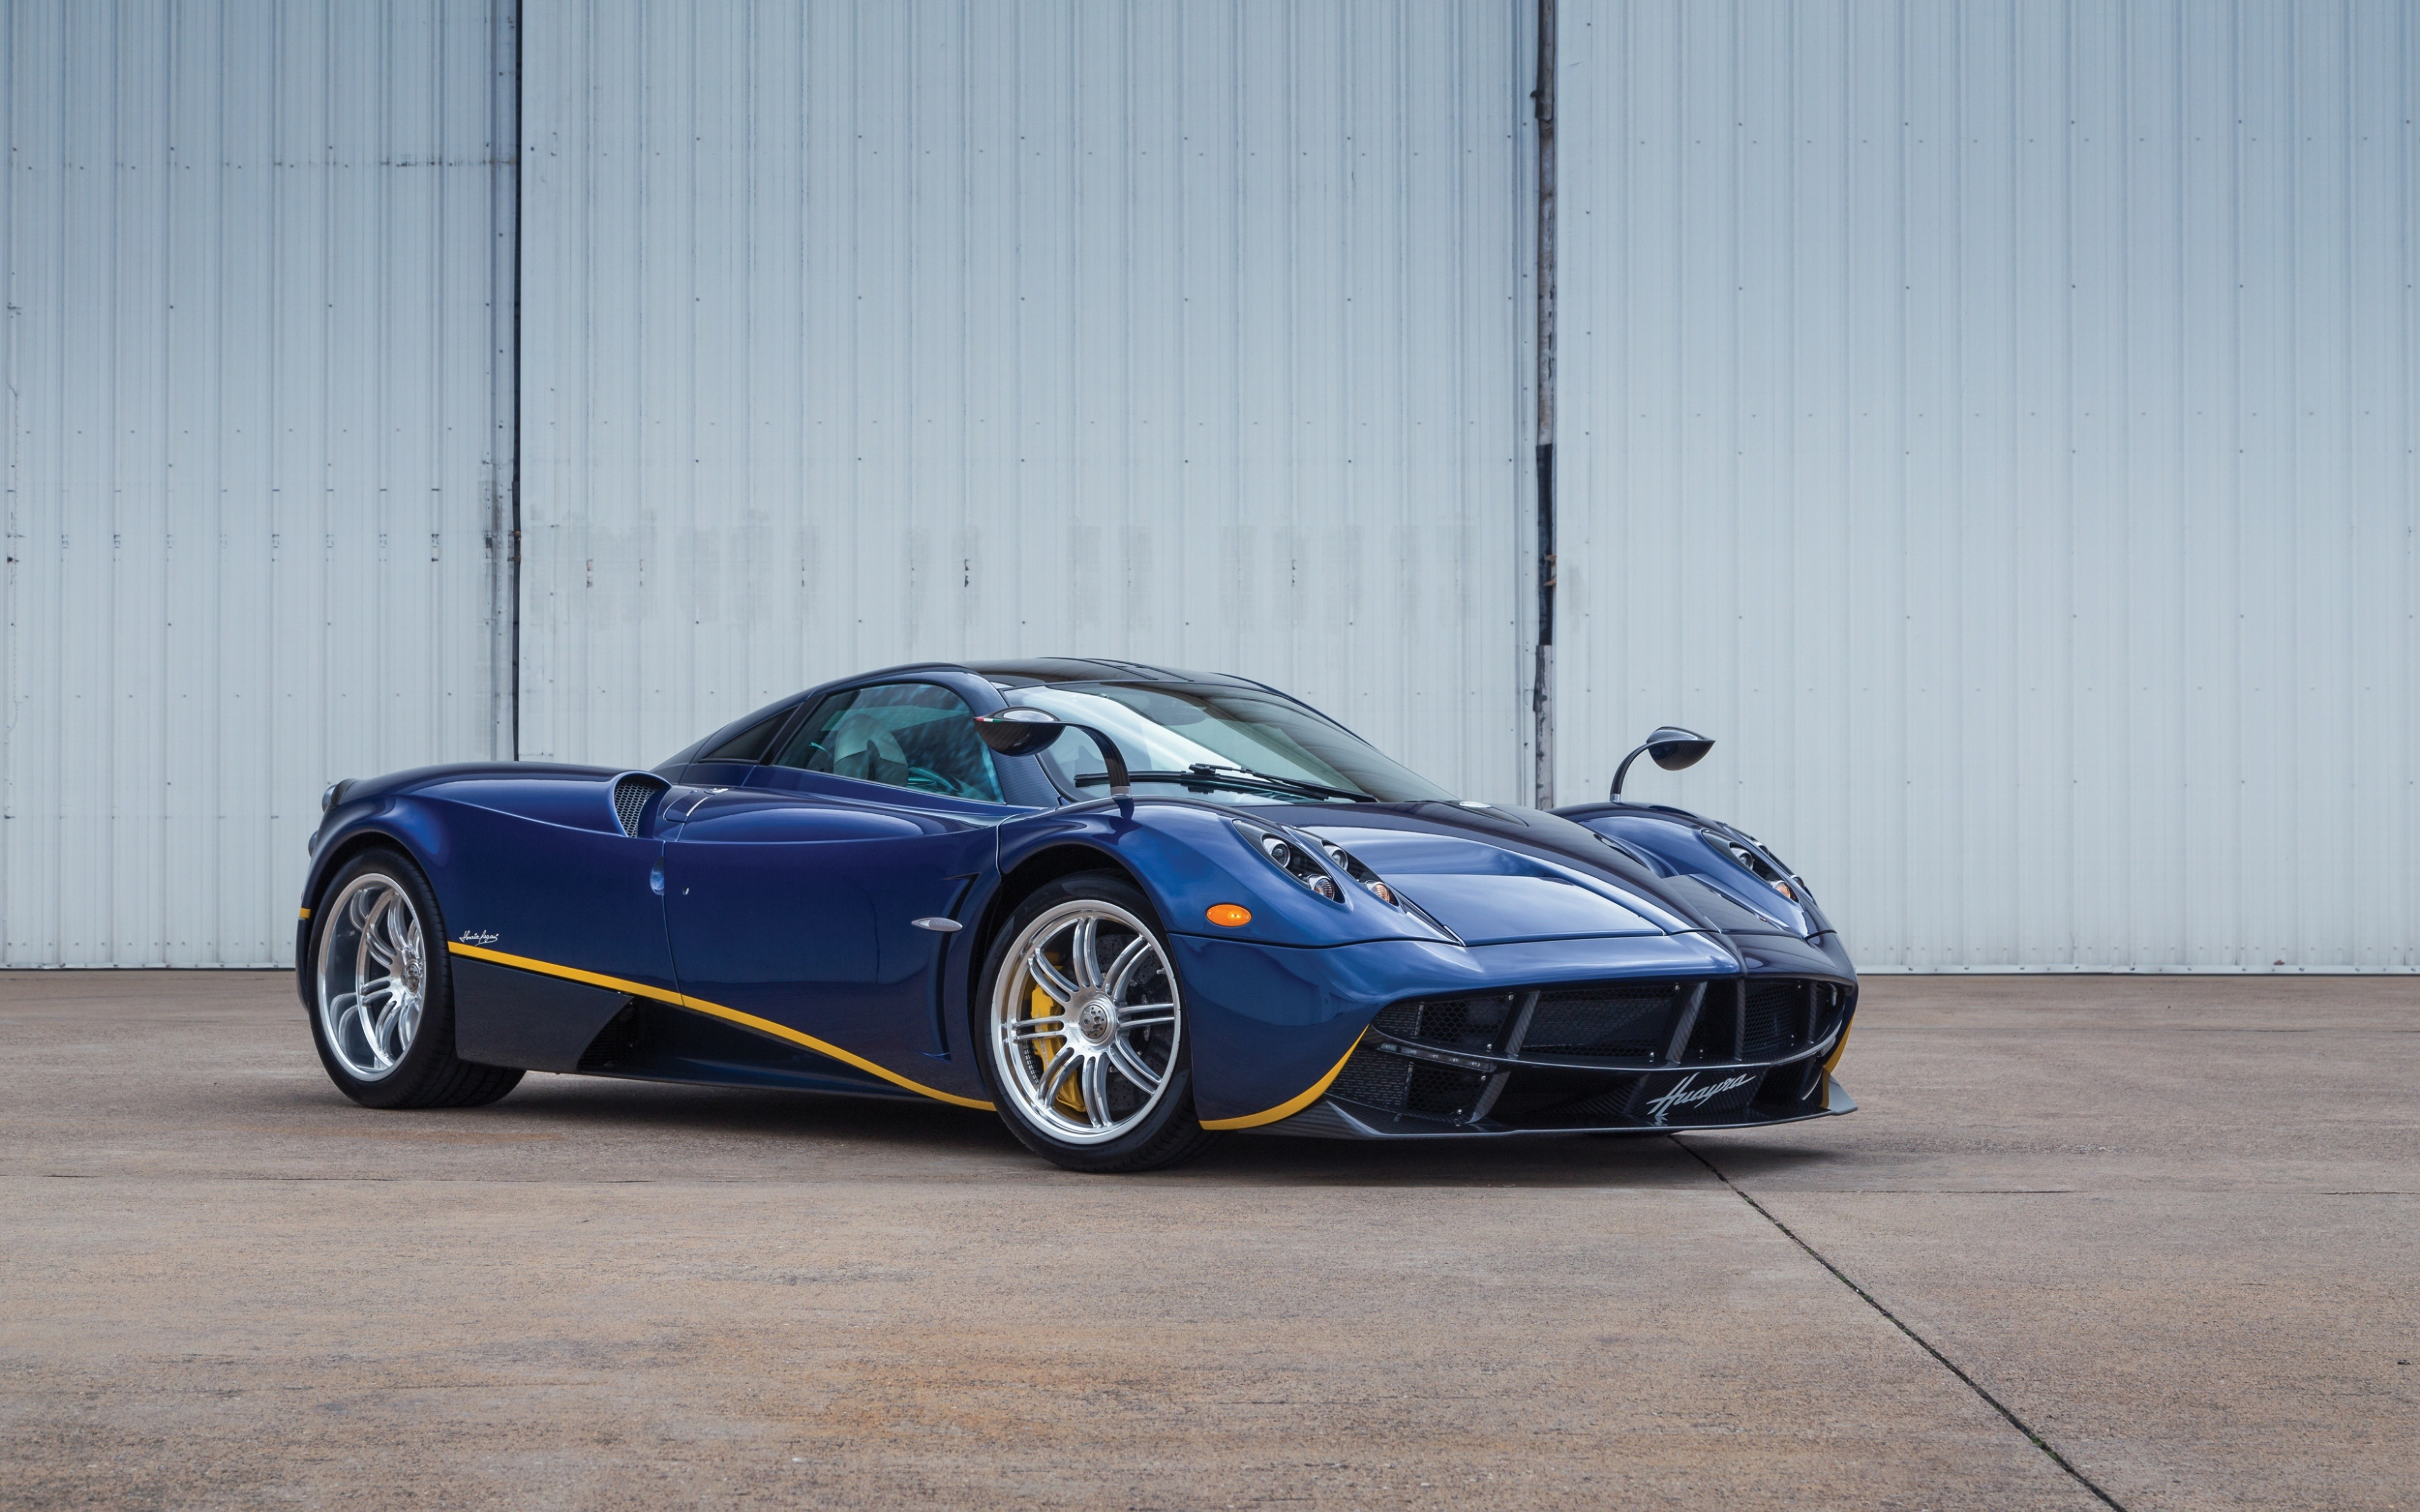 Download 3840x2400 wallpaper pagani huayra super sports car side view 4k ultra hd 16 10 - Car side view wallpaper ...